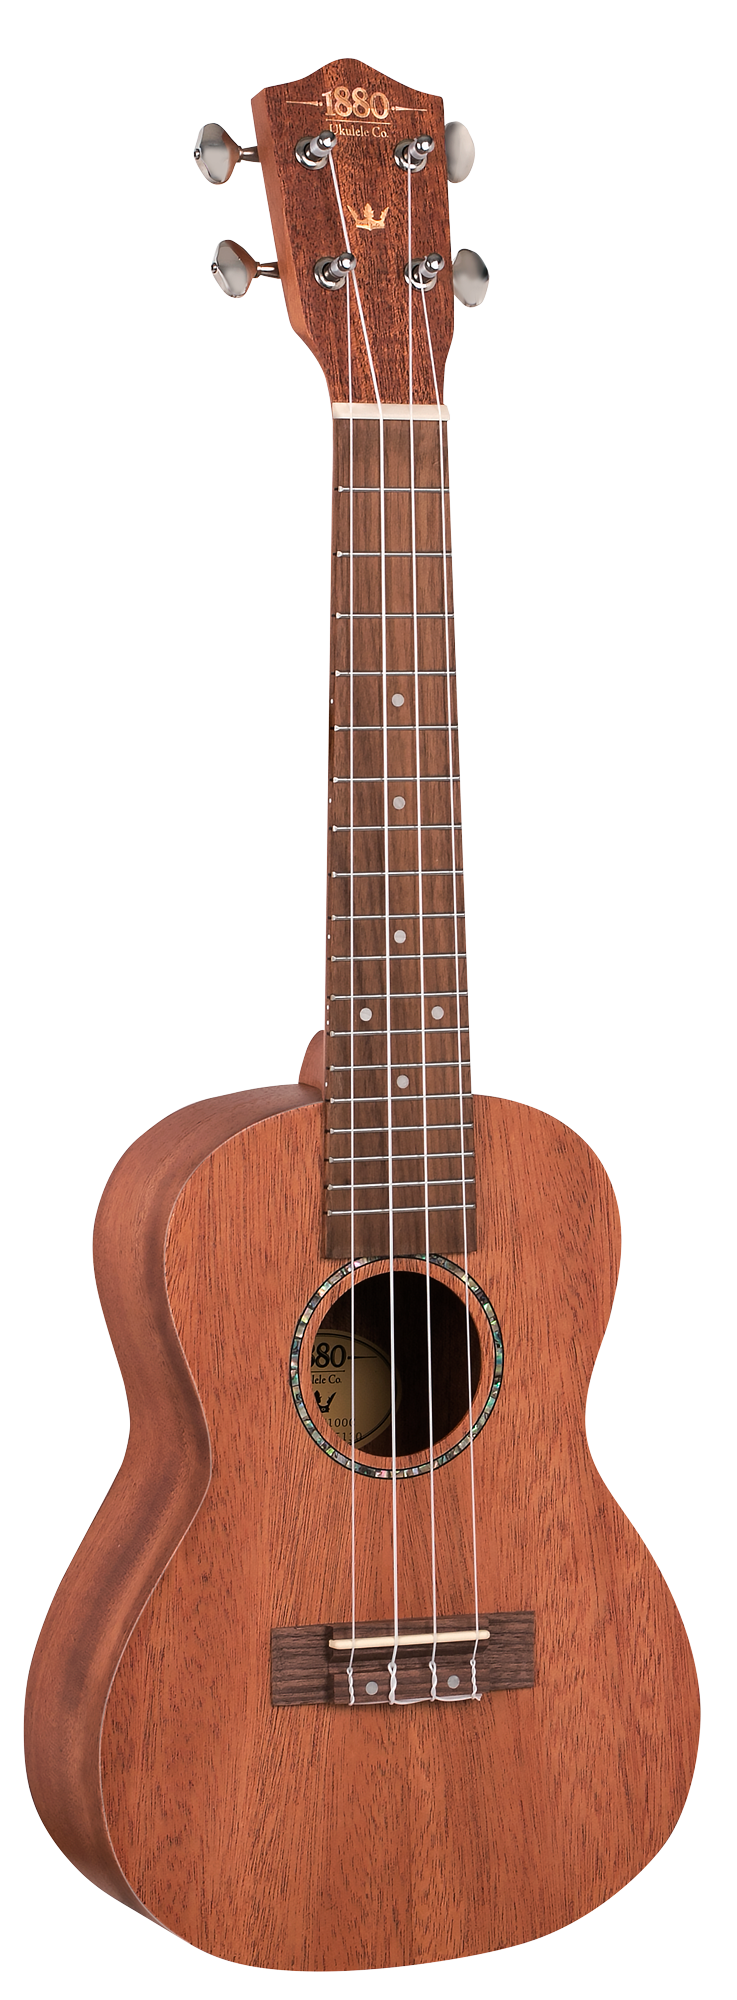 1880 UKULELE CO. 100 Series Concert Ukulele